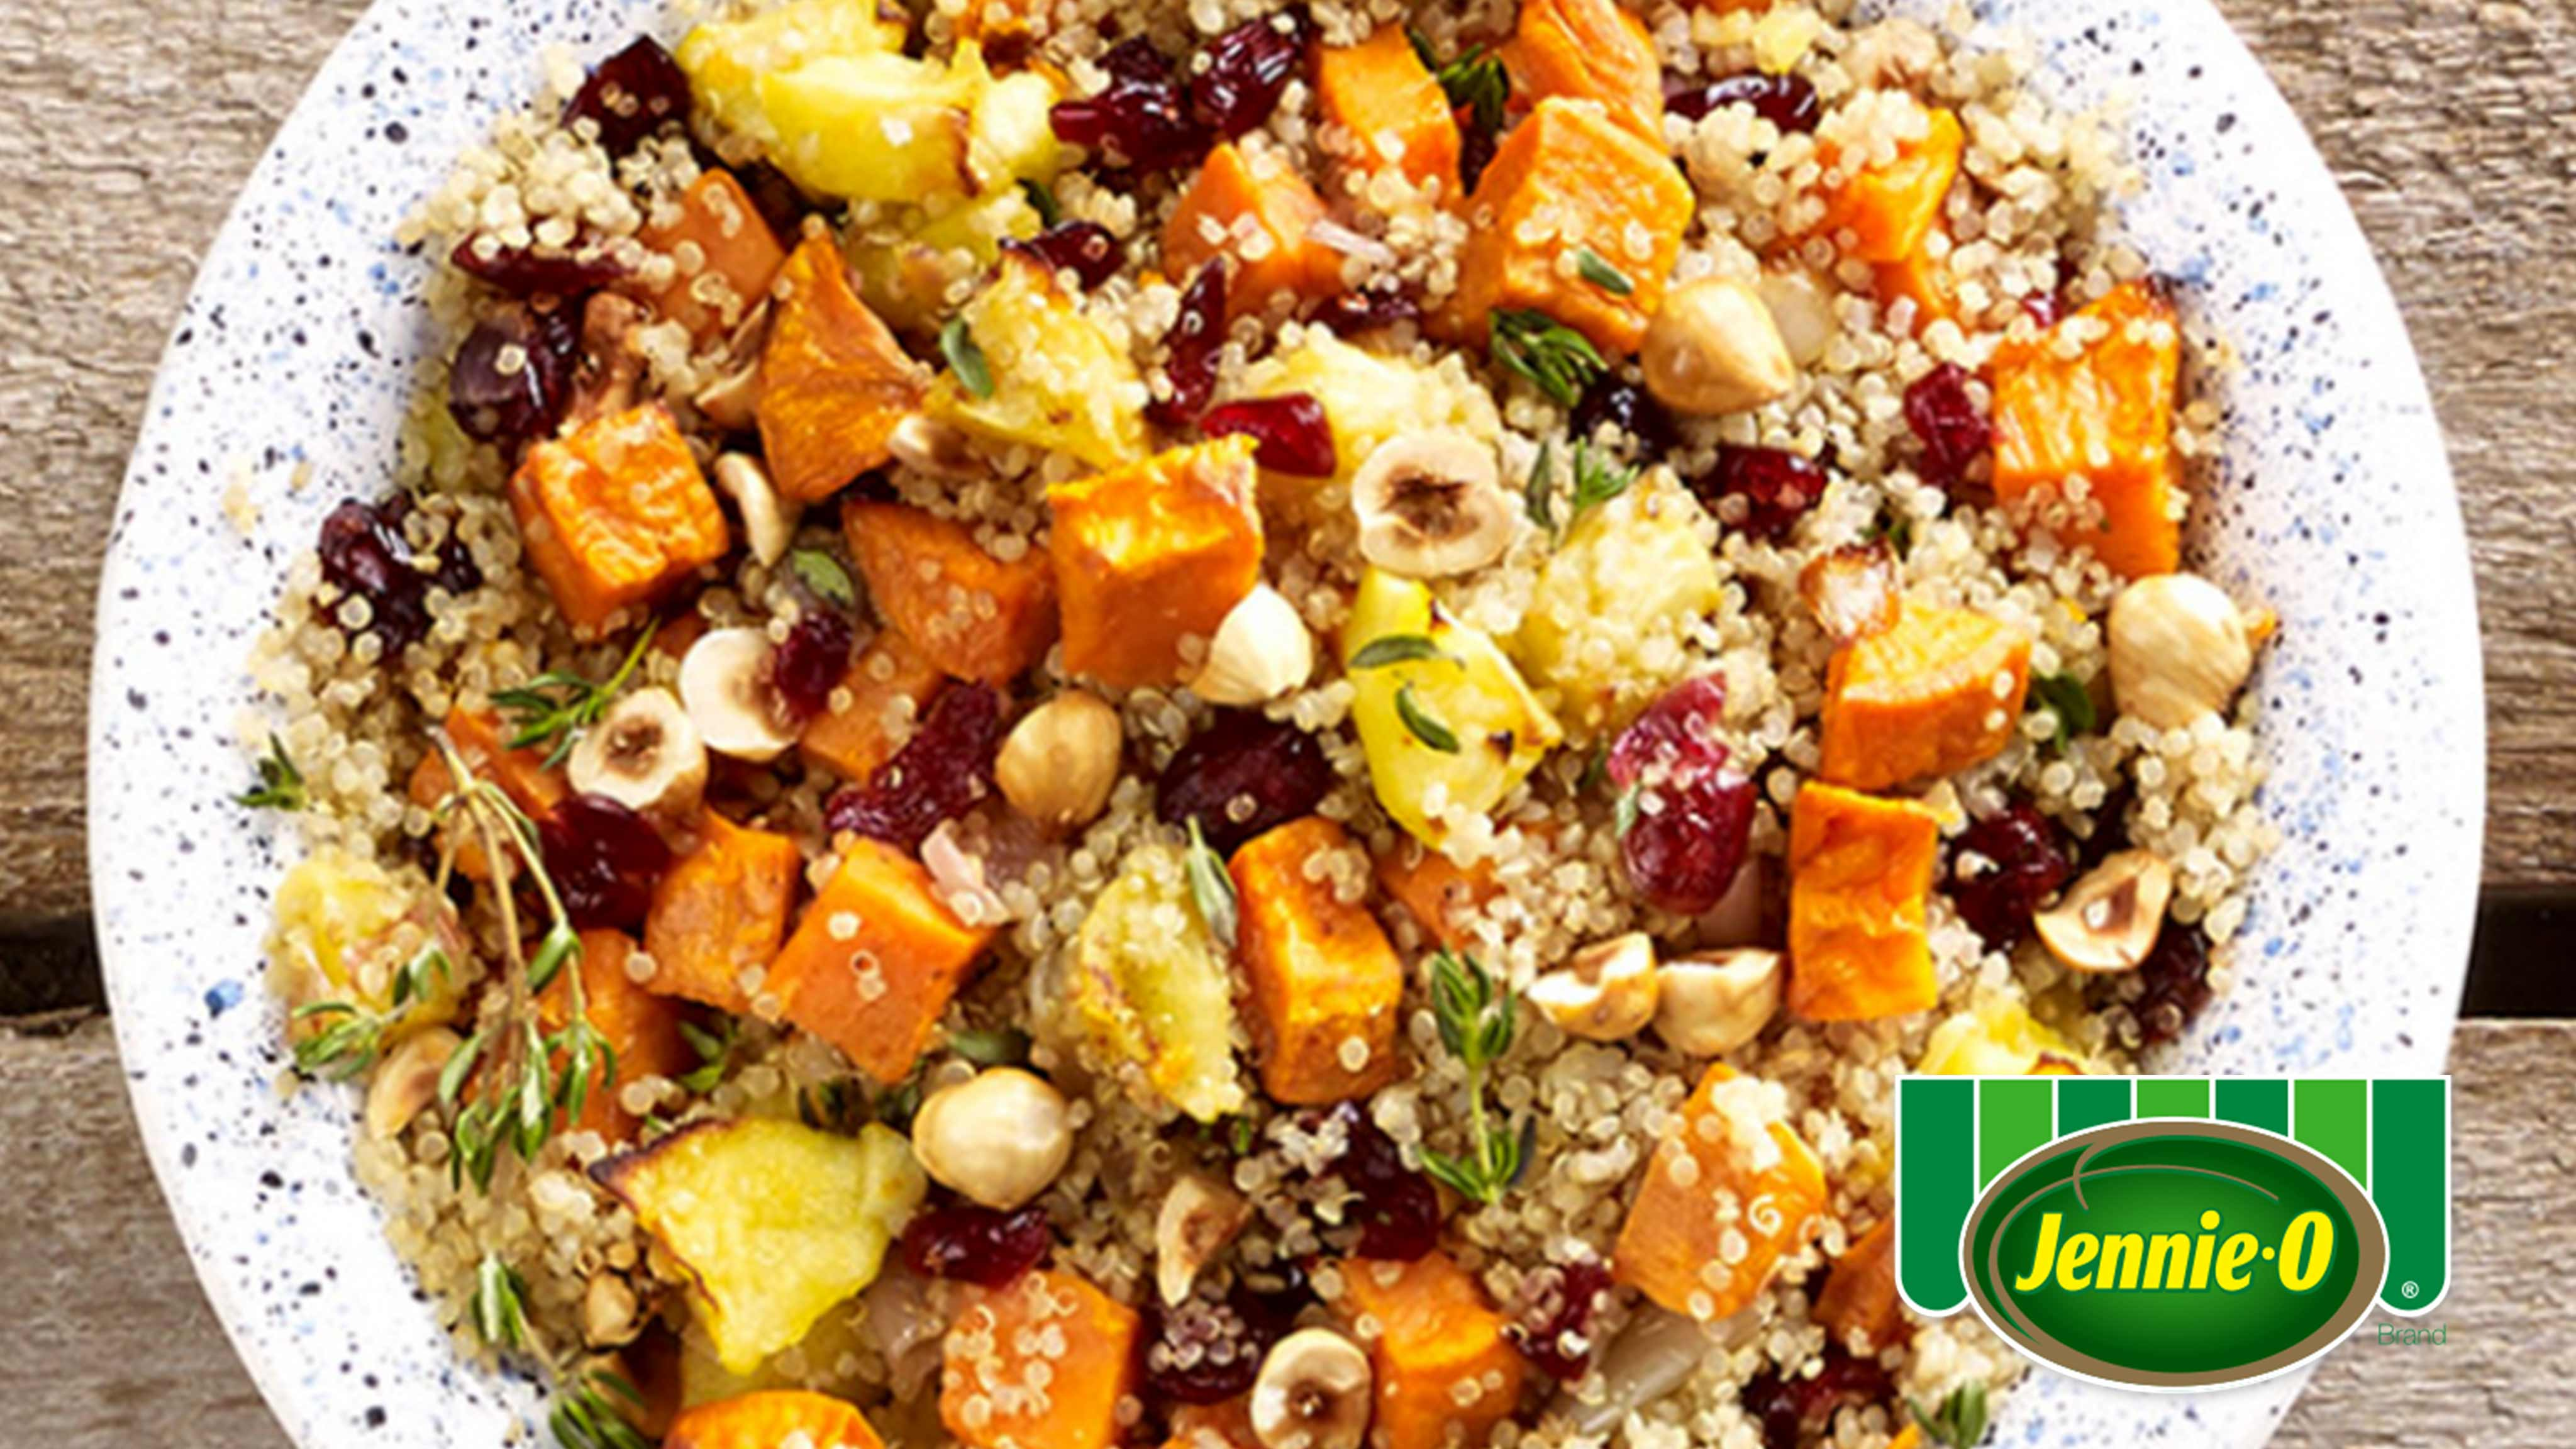 Image for Recipe Quinoa Stuffing with Sweet Potatoes, Apples and Hazelnuts